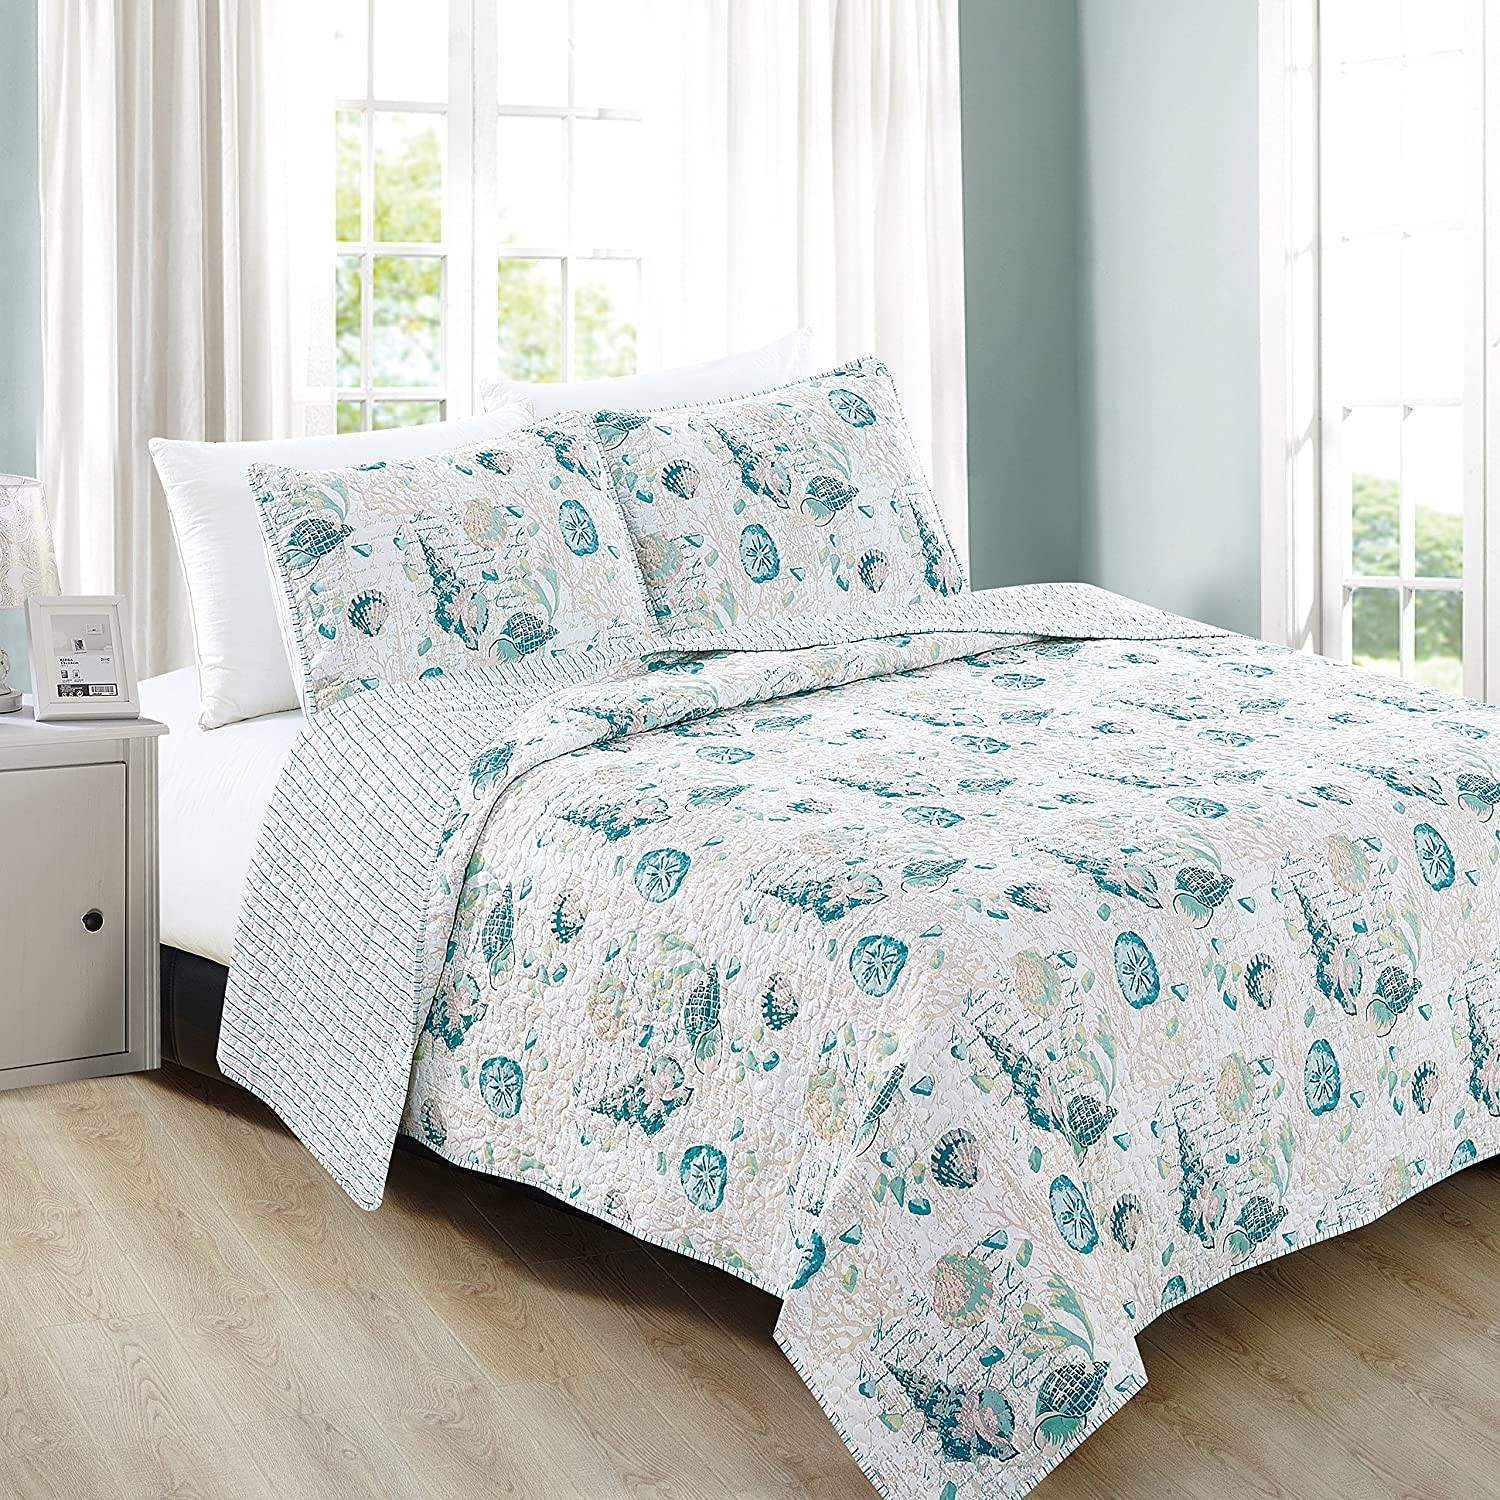 Home Fashion Designs 3-Piece Coastal Beach Theme Quilt Set with Shams. Soft All-Season Luxury Microfiber Reversible Bedspread and Coverlet. Westsands Collection Brand. (Full/Queen, Multi)